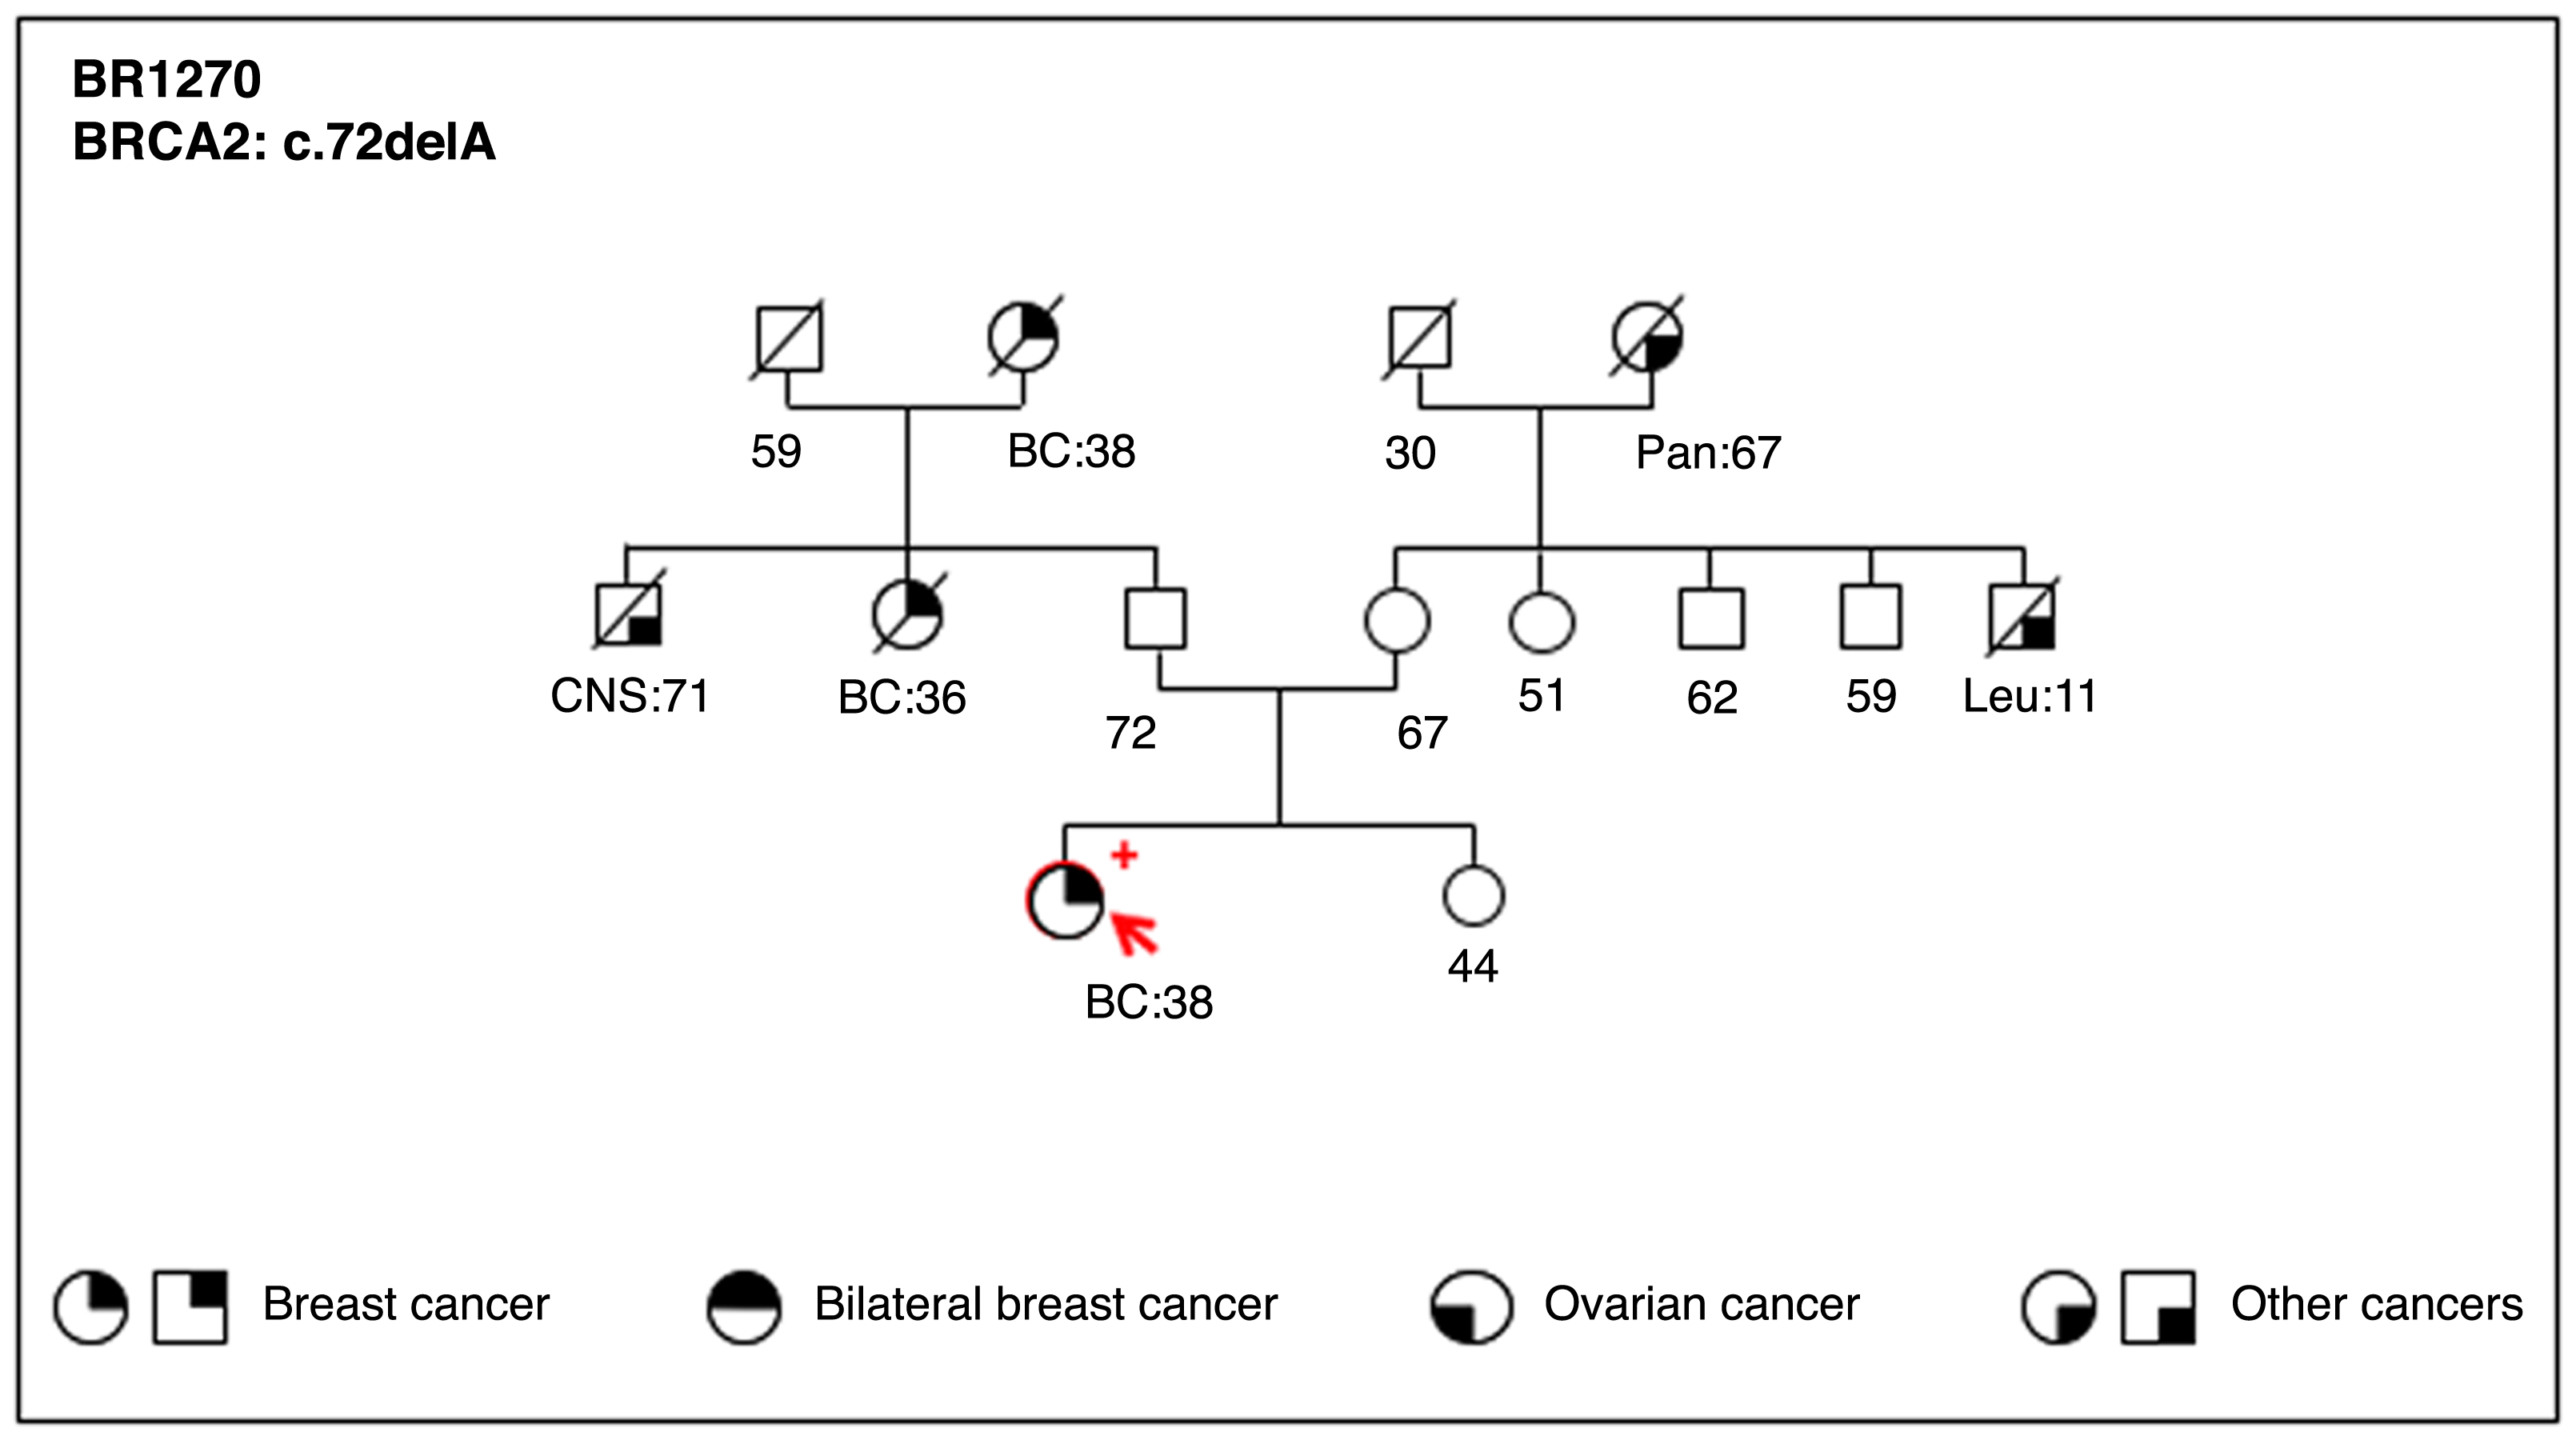 Next-generation sequencing of BRCA1 and BRCA2 genes for